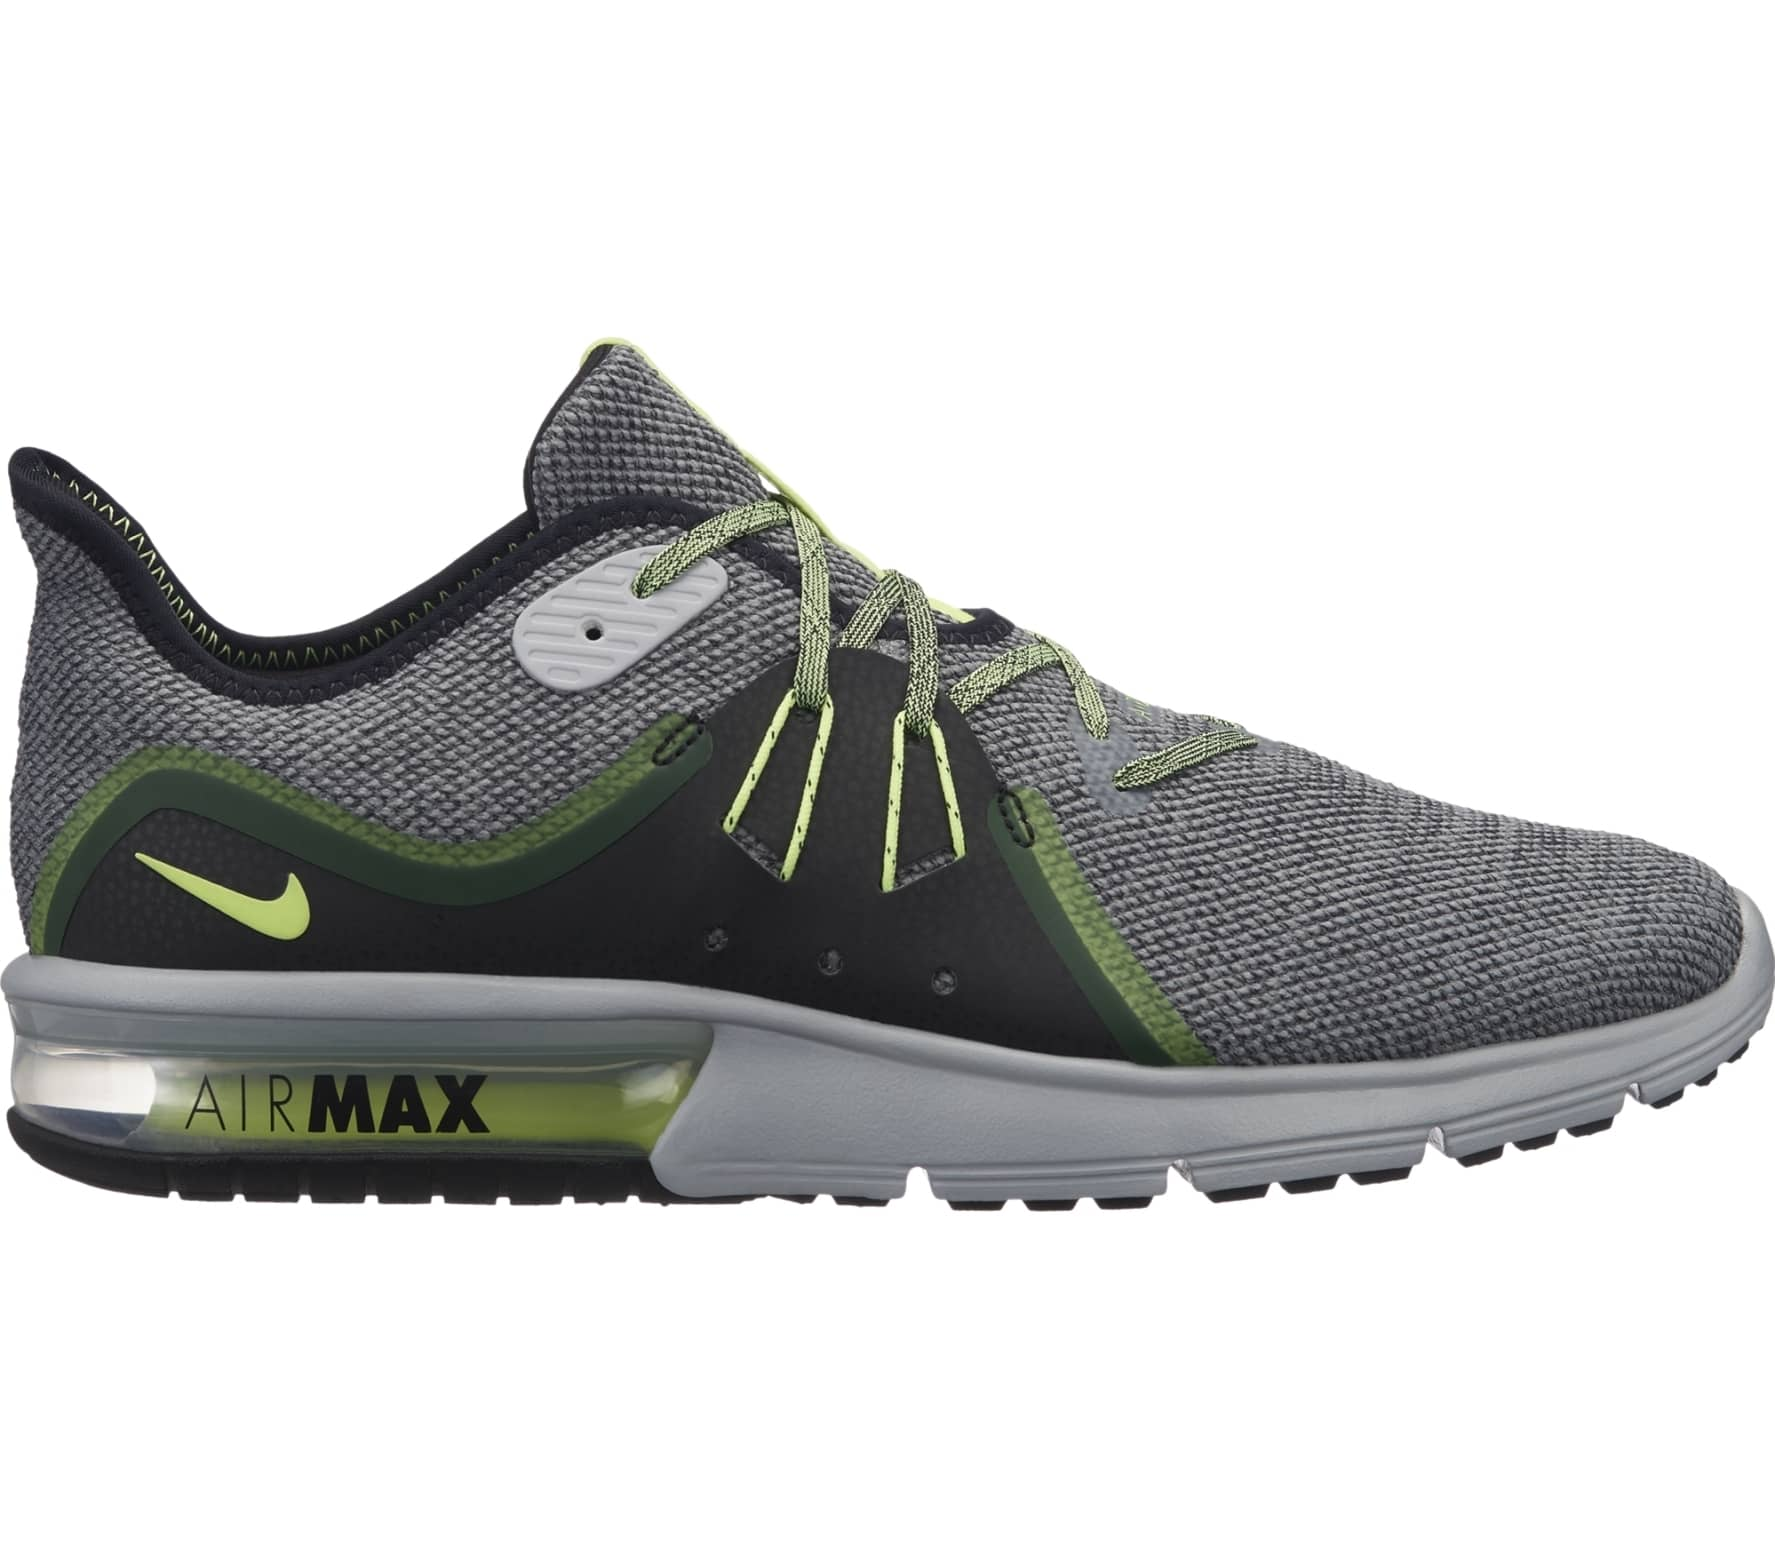 lowest price 55505 381b5 Nike - Air Max Sequent 3 men s running shoes (grey green)